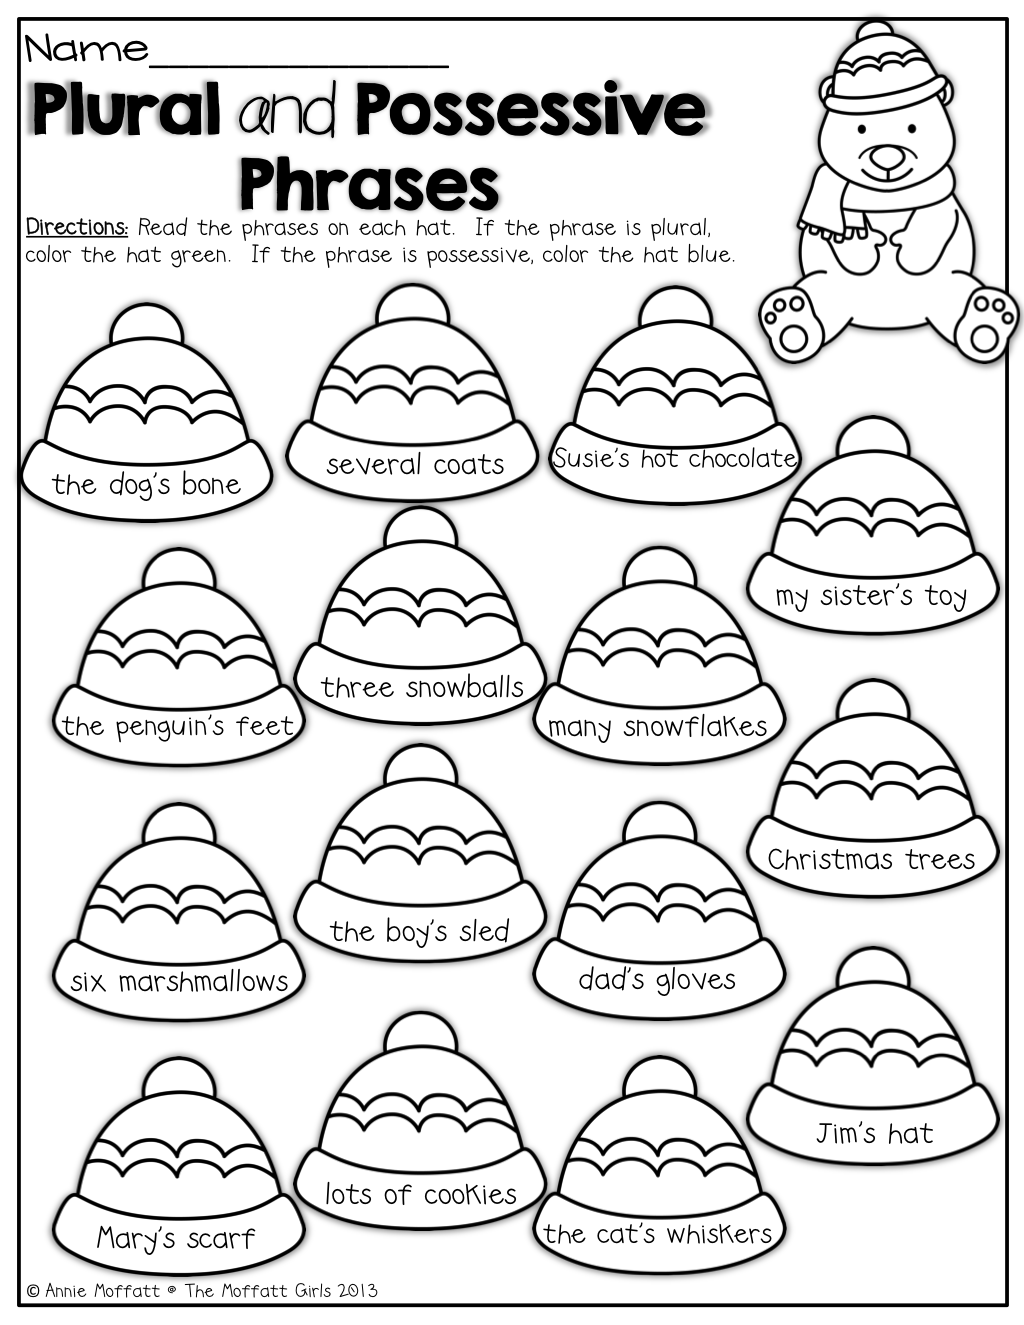 Plural And Possessive Phrases Color By The Code